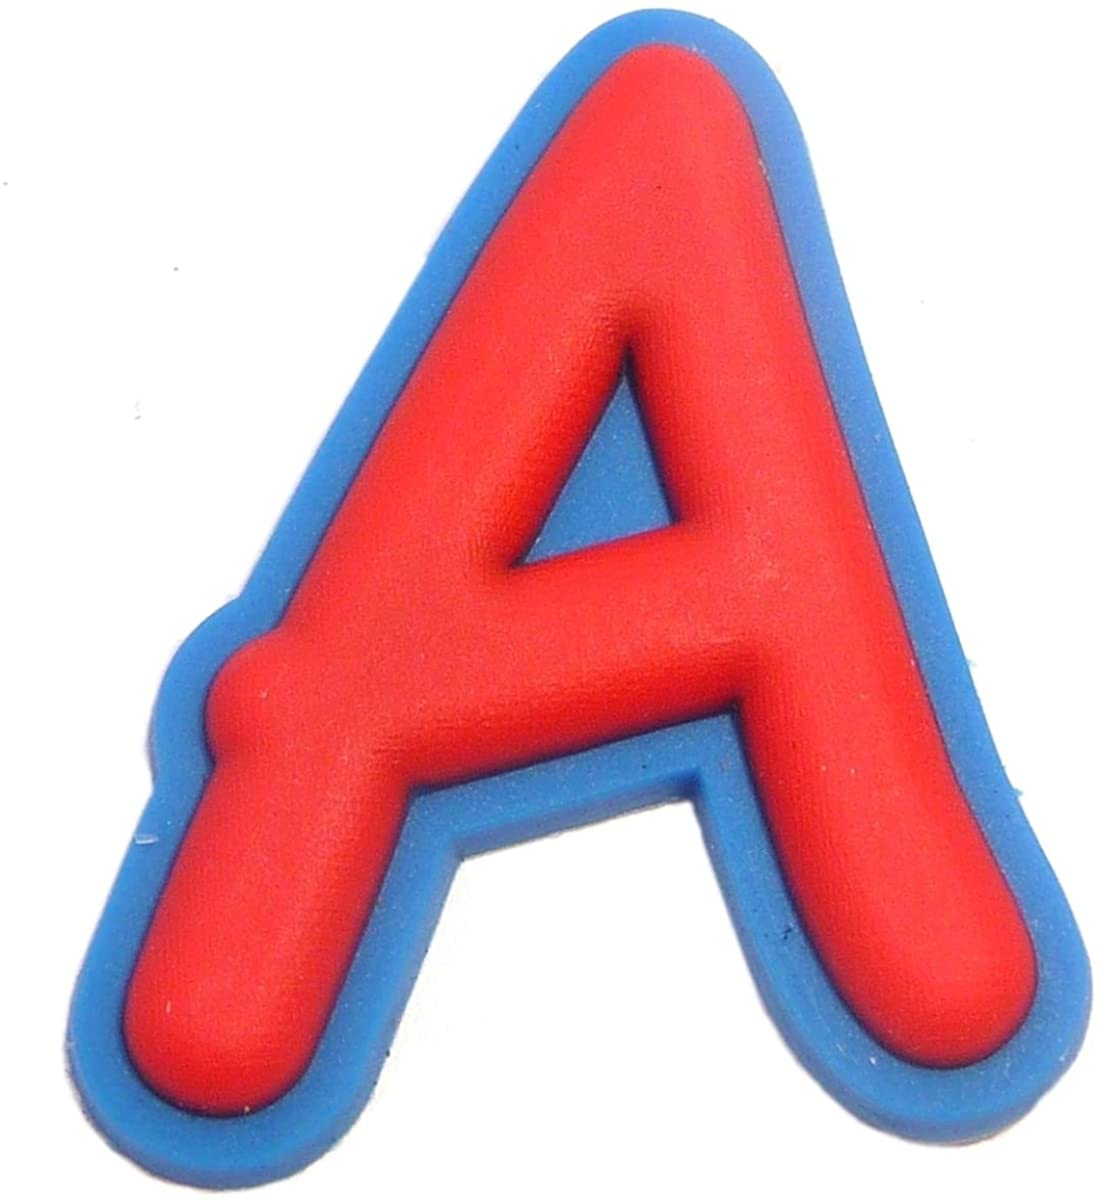 Letter A Rubber Charm for Wristbands and Shoes